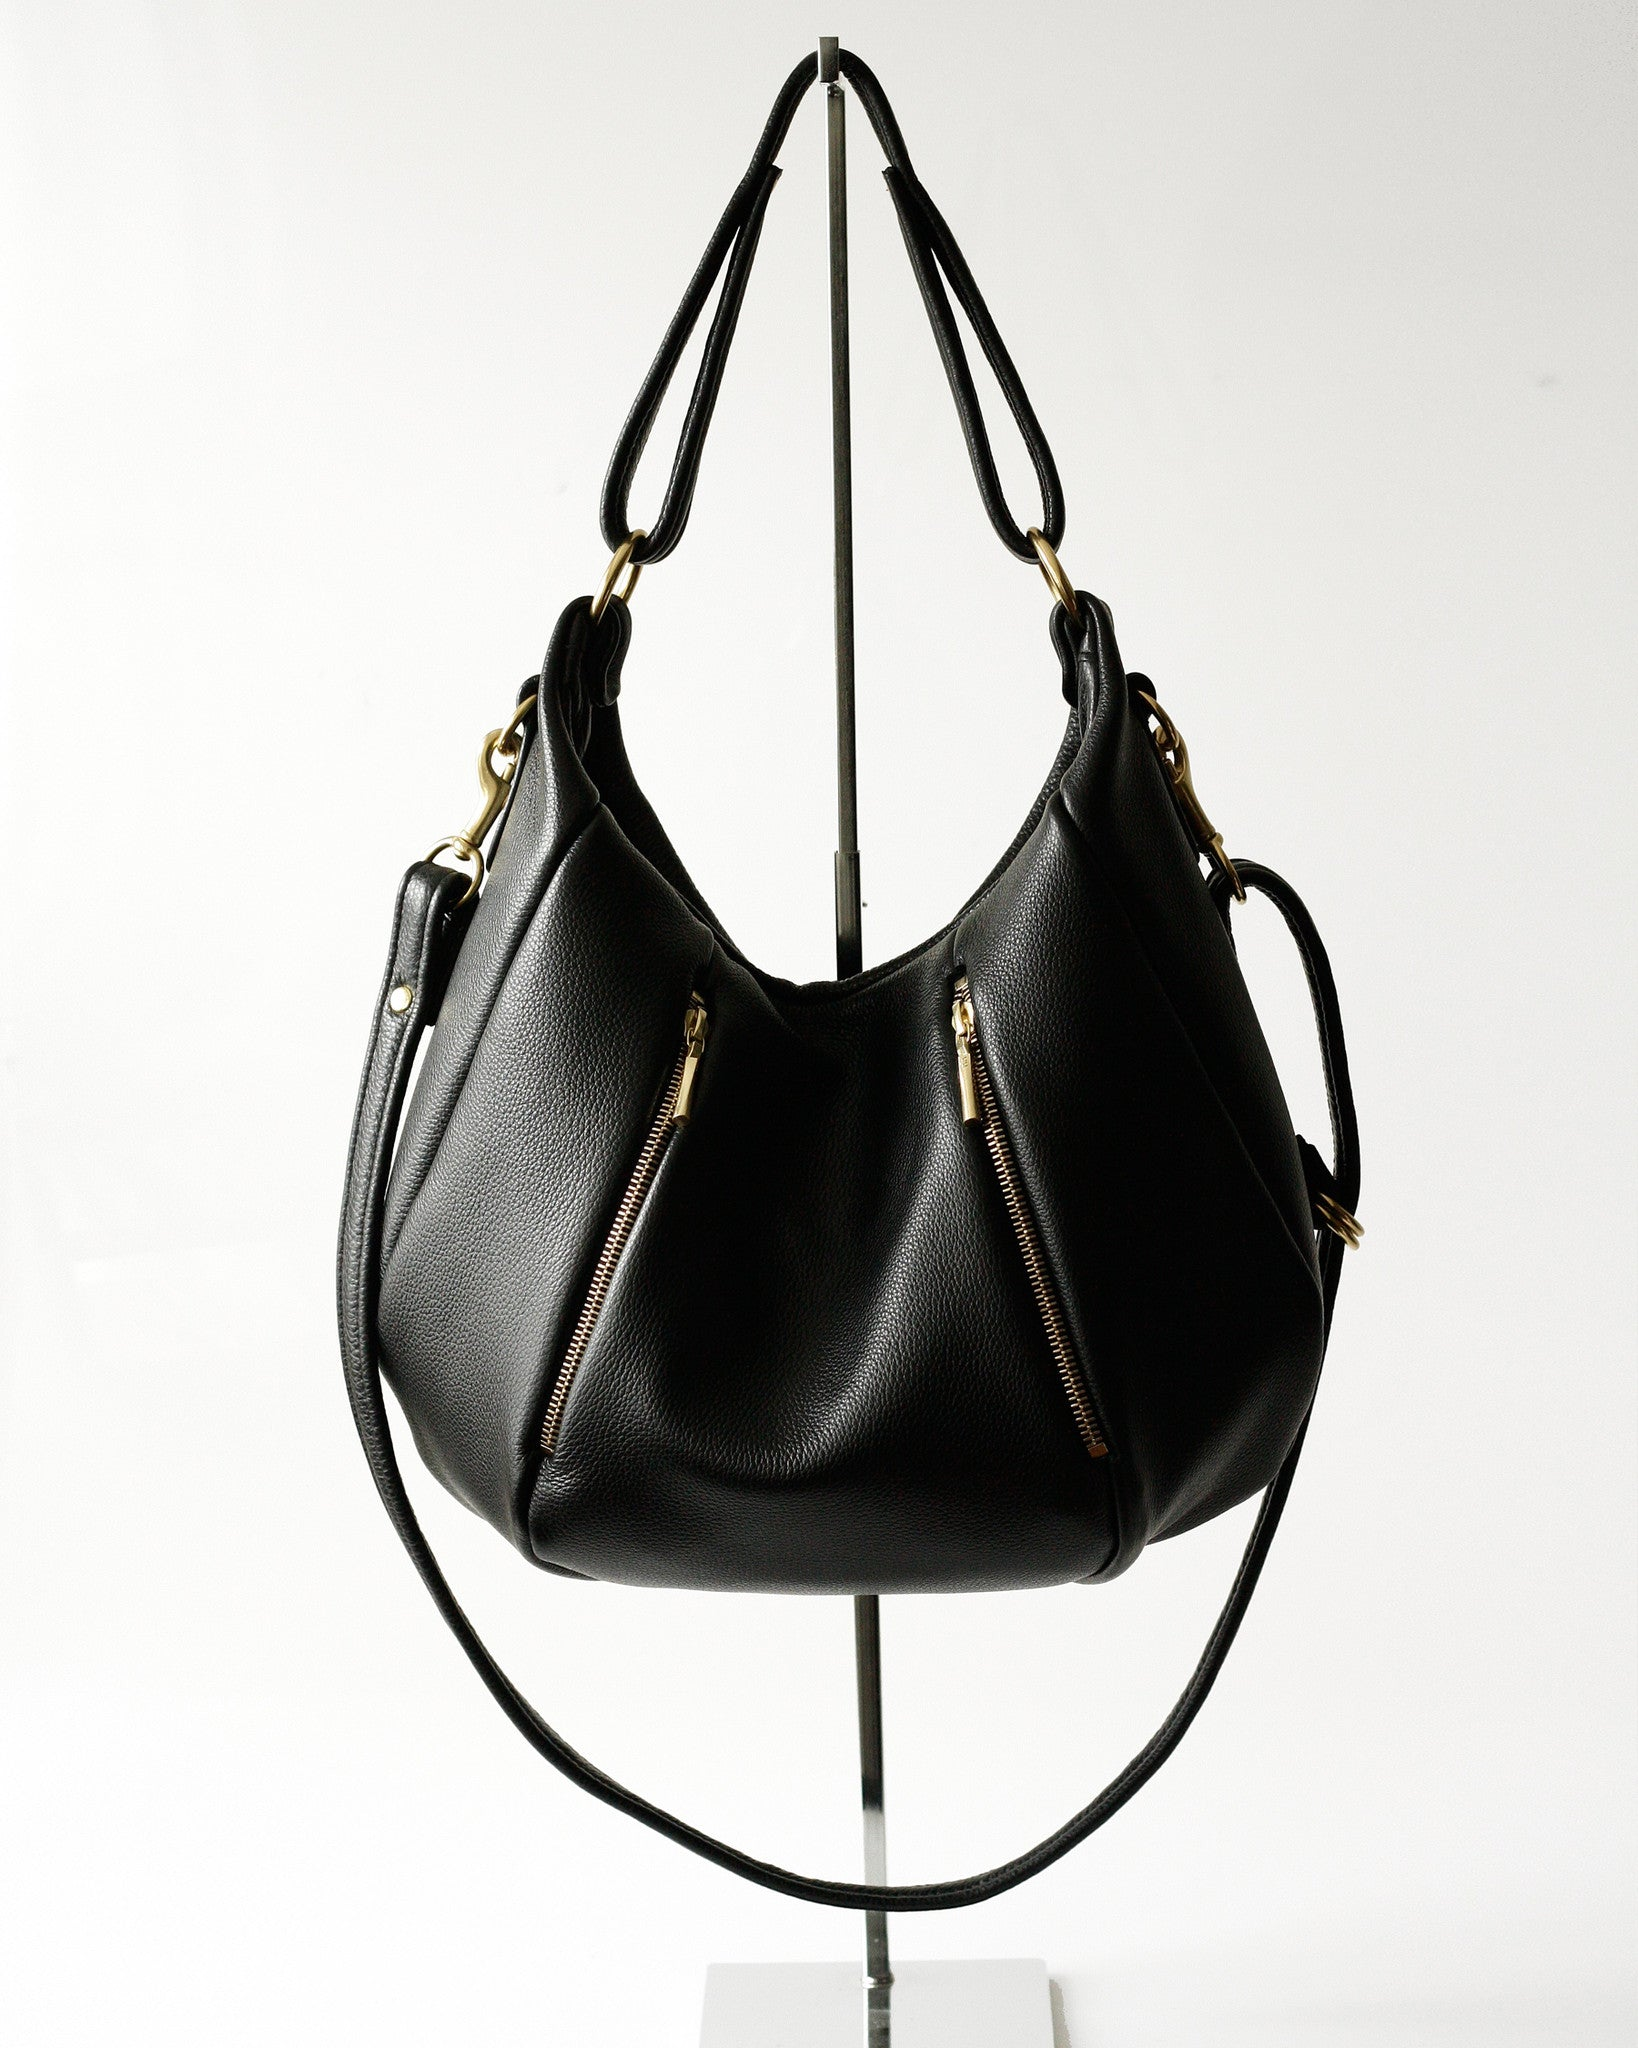 Ballet - Opelle bag Permanent Collection - Opelle leather handbag handcrafted leather bag toronto Canada